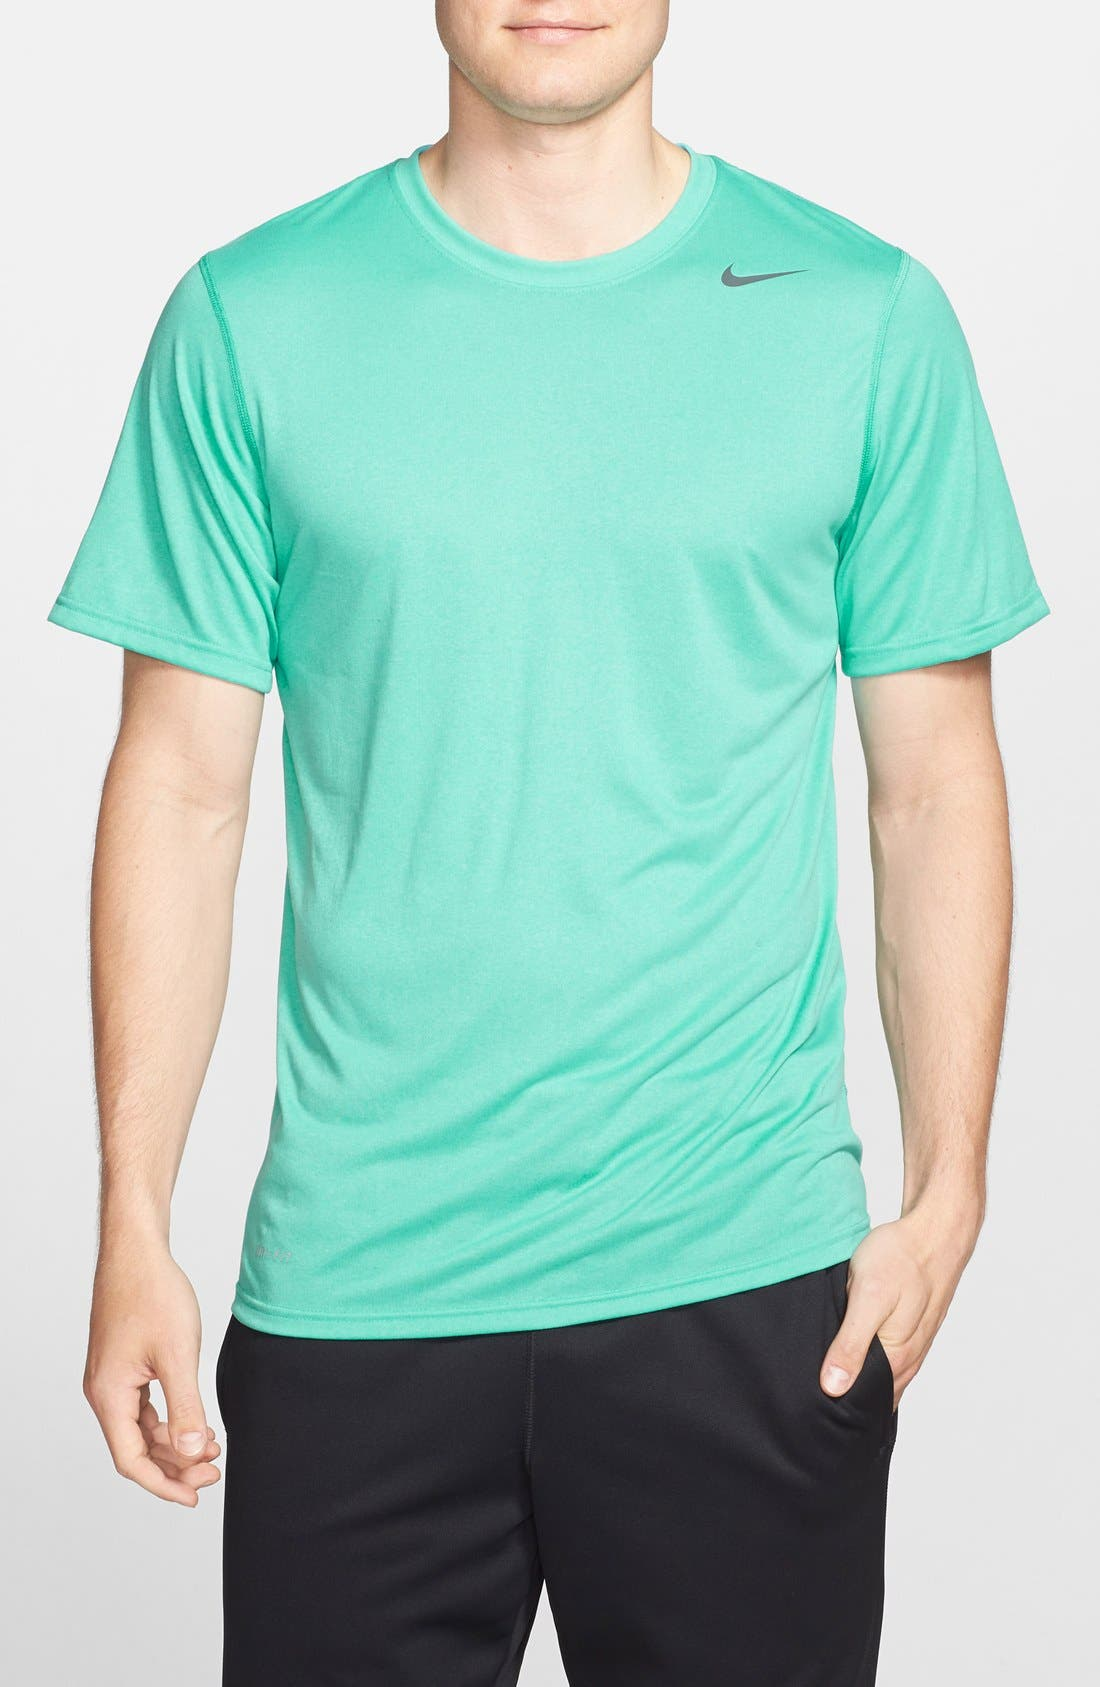 Main Image - Nike 'Legends' Dri-FIT T-Shirt